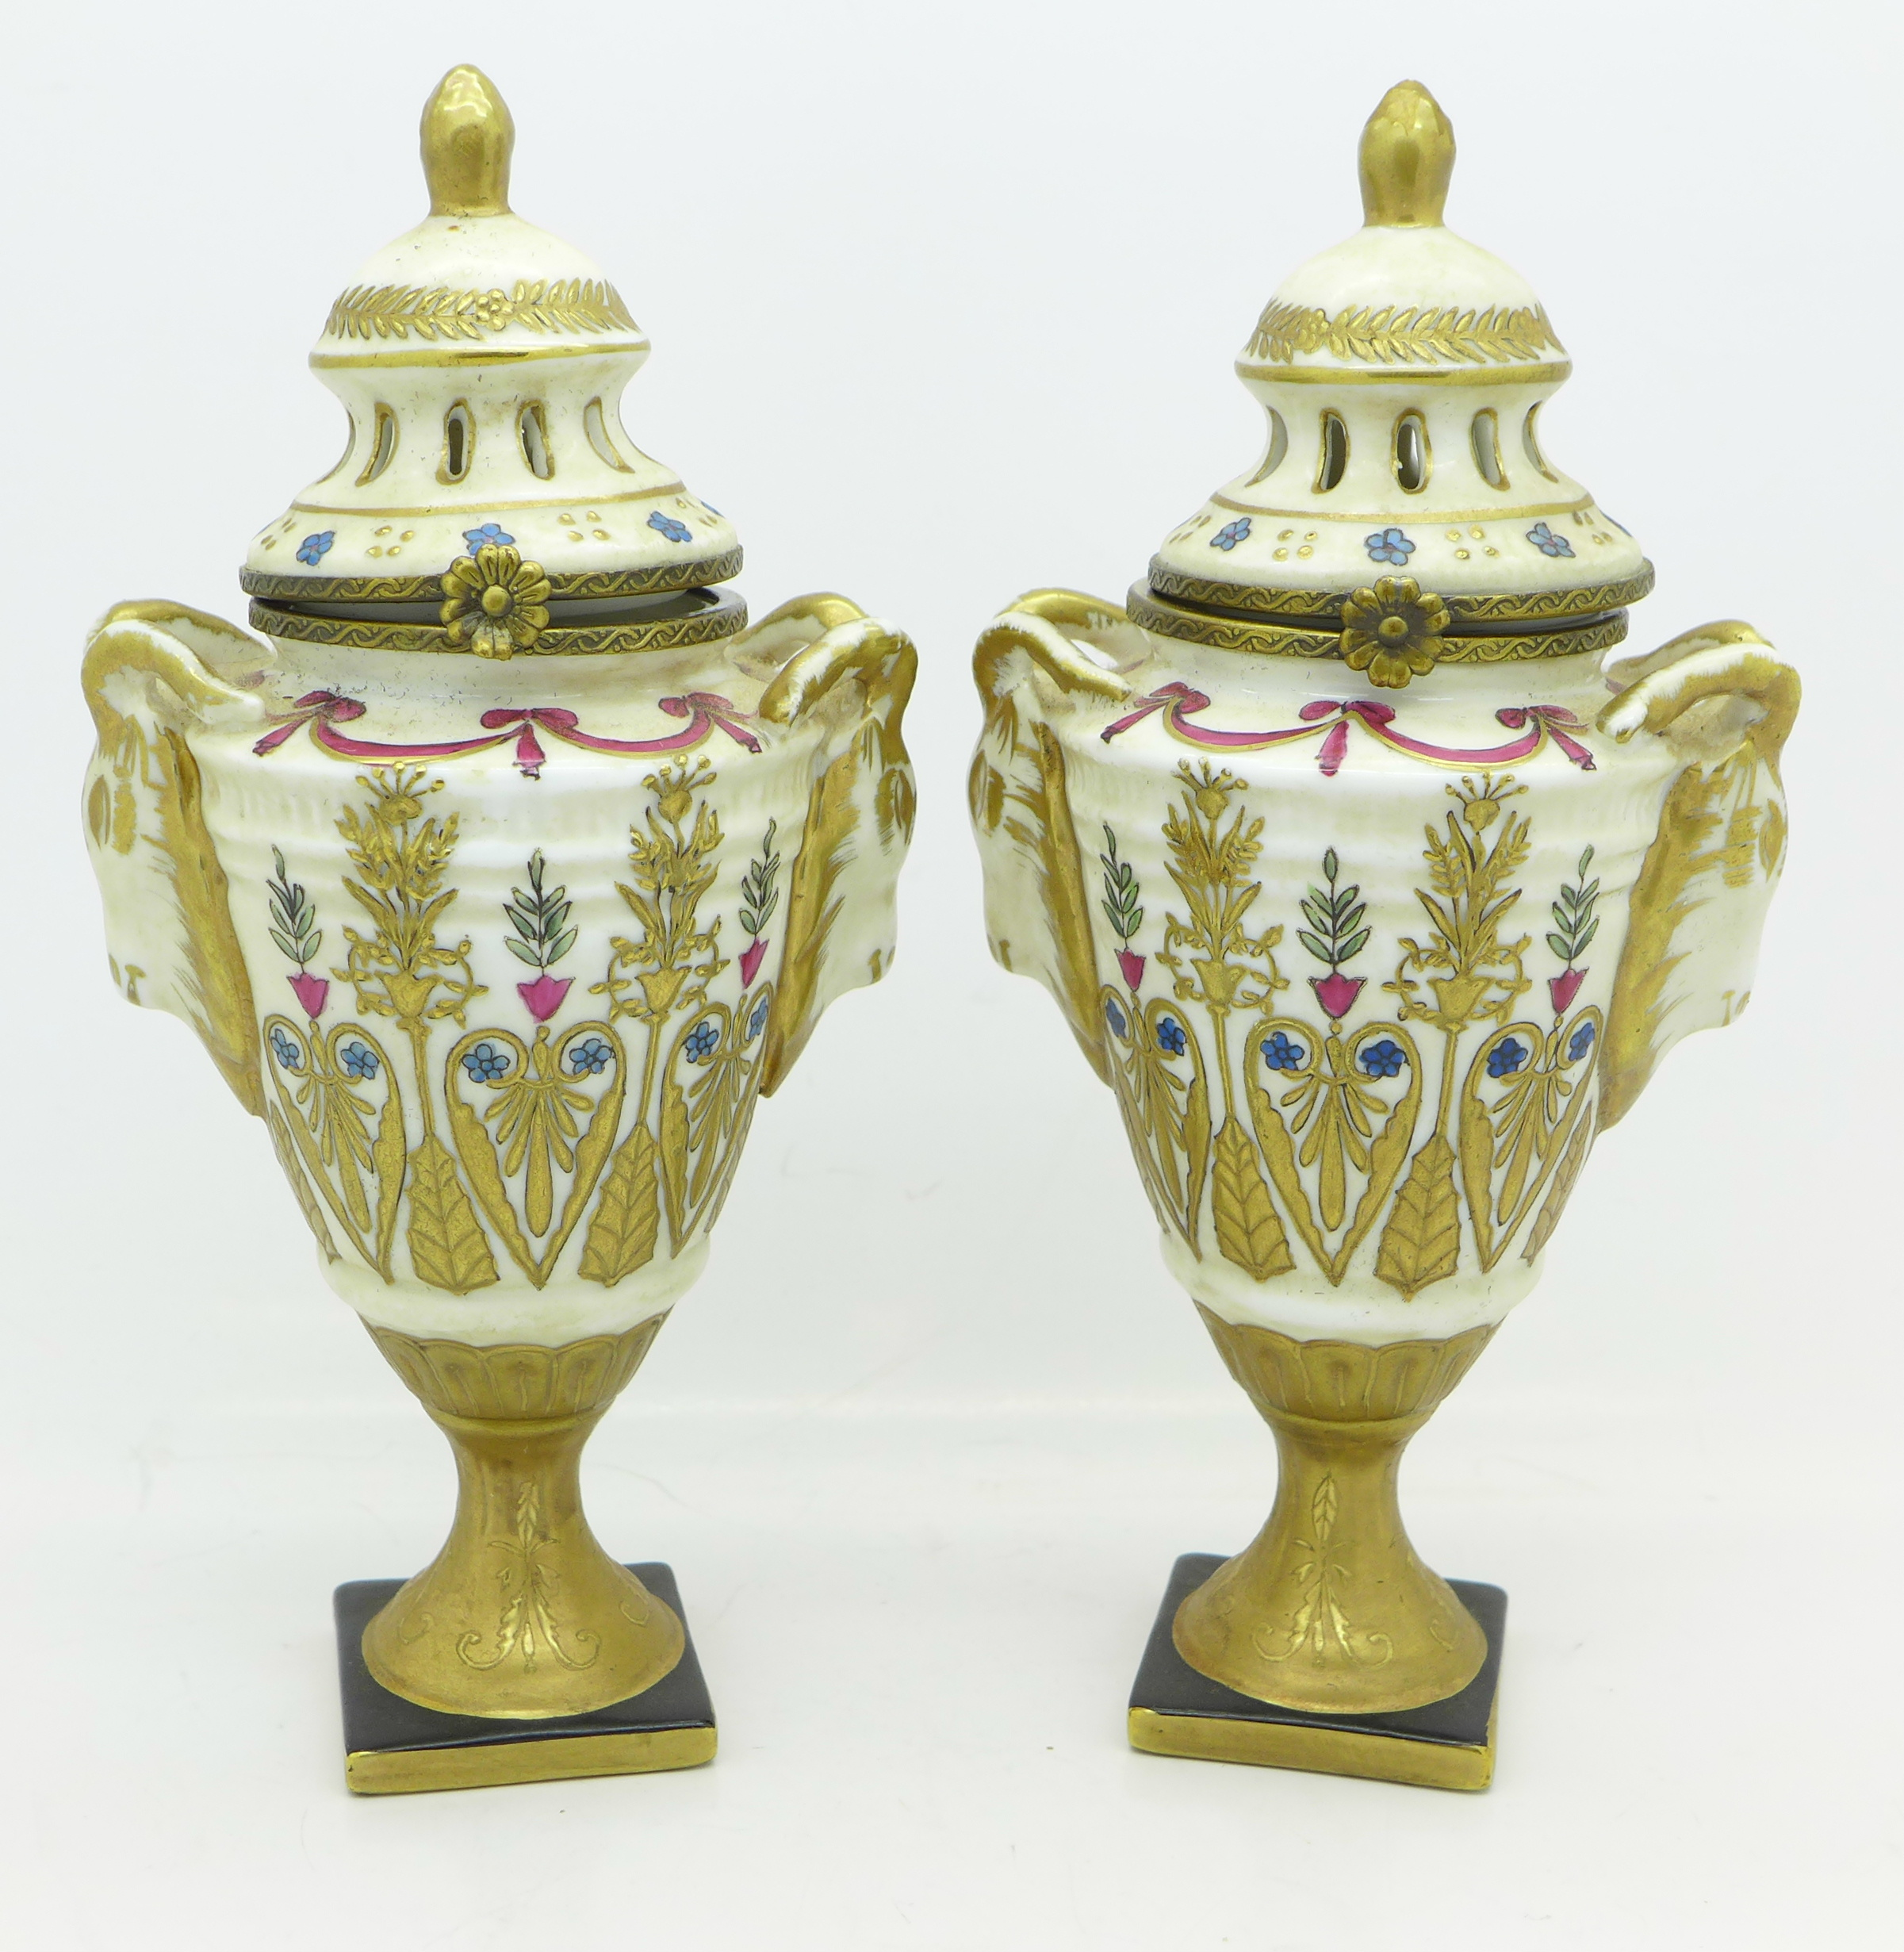 Lot 640D - A pair of continental pot pourri pots with gilt decoration and hinged lids, 17.